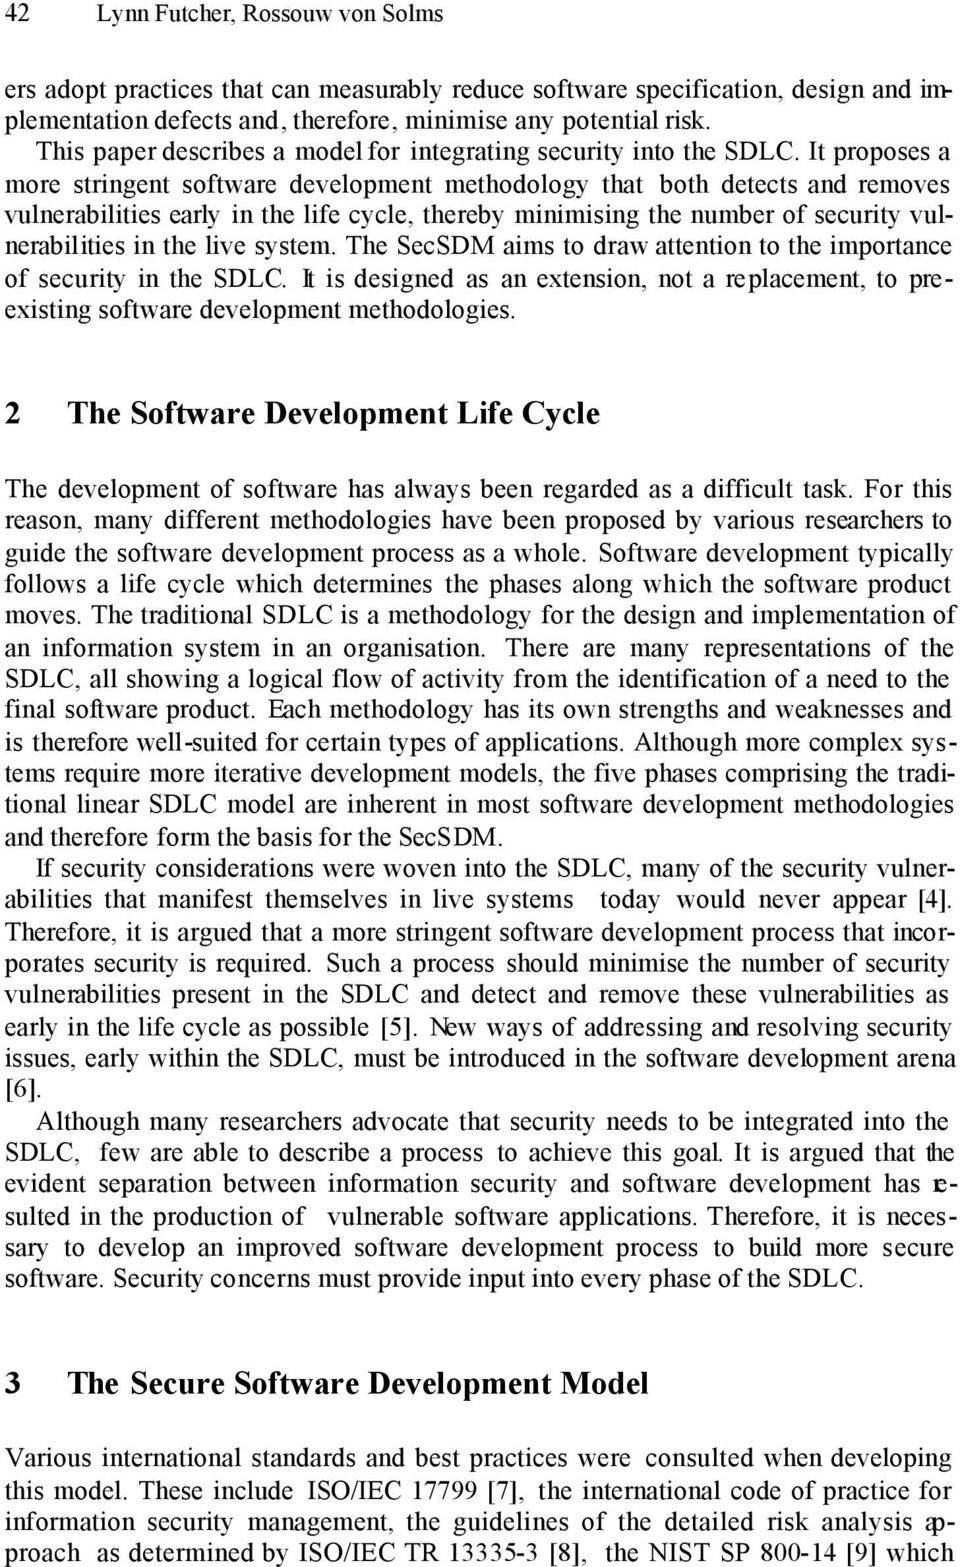 It proposes a more stringent software development methodology that both detects and removes vulnerabilities early in the life cycle, thereby minimising the number of security vulnerabilities in the